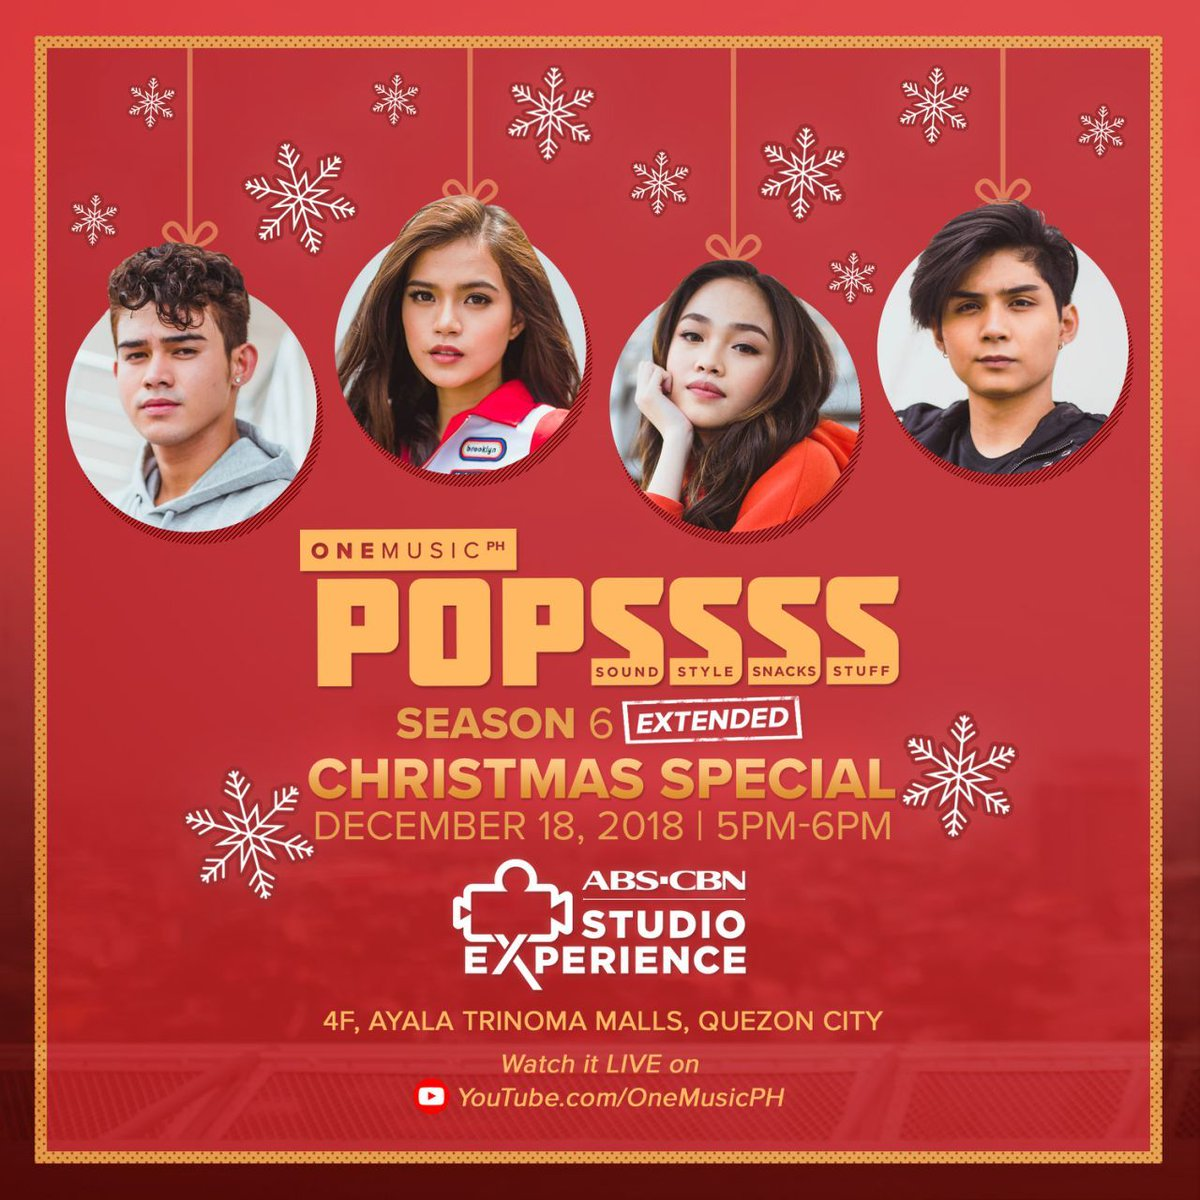 Catch the #POPSSSSSquad for the last time this year because were extending #POPSSSS6! Be part of the LIVE audience on December 18 at the ABS-CBN Studio Experience, or watch it LIVE on the One Music PH YouTube channel! Maligayang #POPSSSSKO2018!